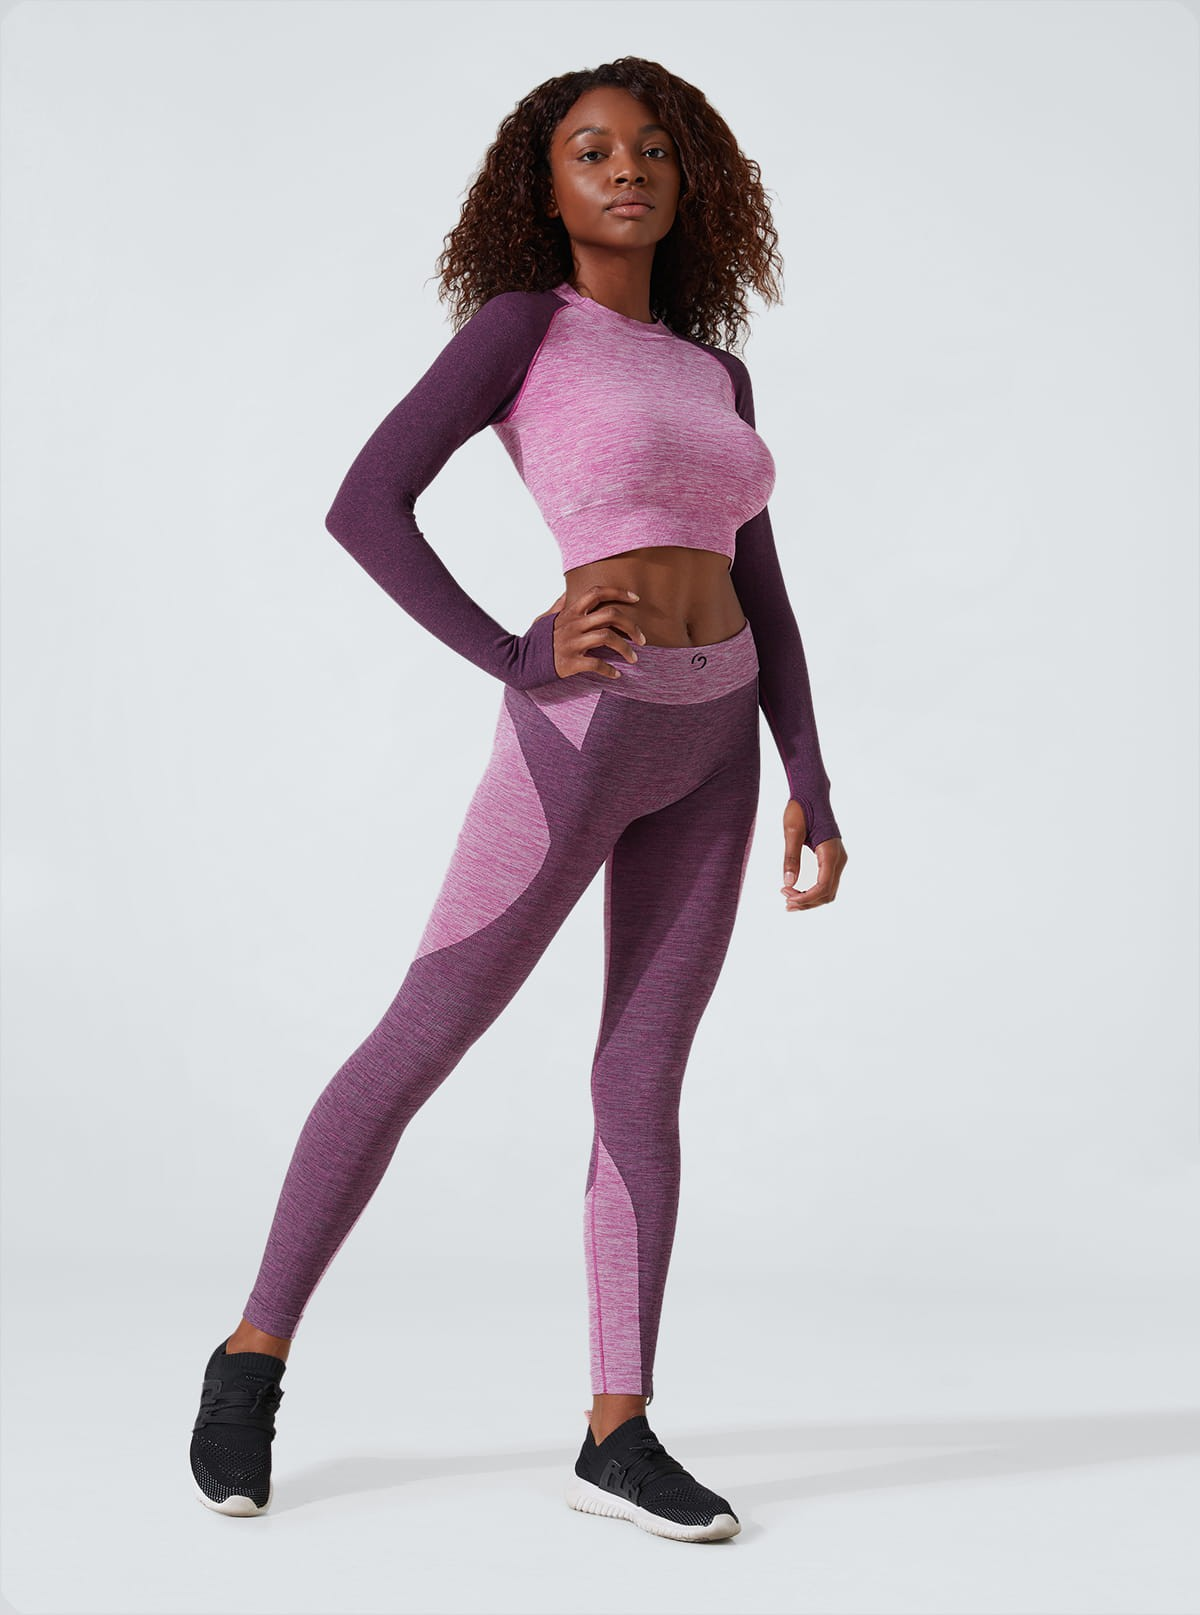 Sport slimming outfit: Long-sleeve top with draining and hydrating leggings